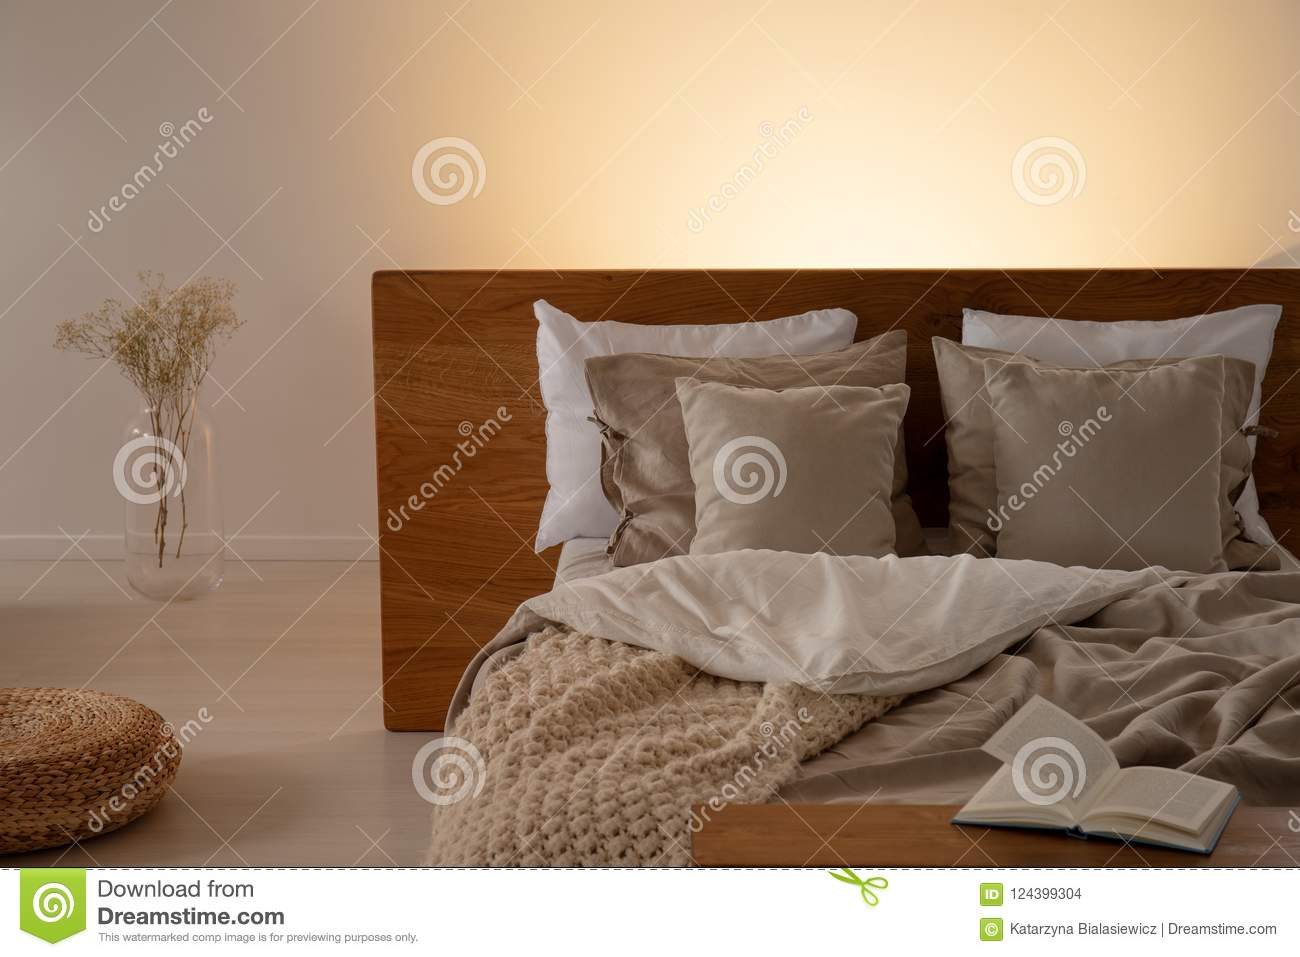 Wonderful Download Pillows And Sheets On Bed With Headboard In Dark Bedroom Interior  With Flowers And Book